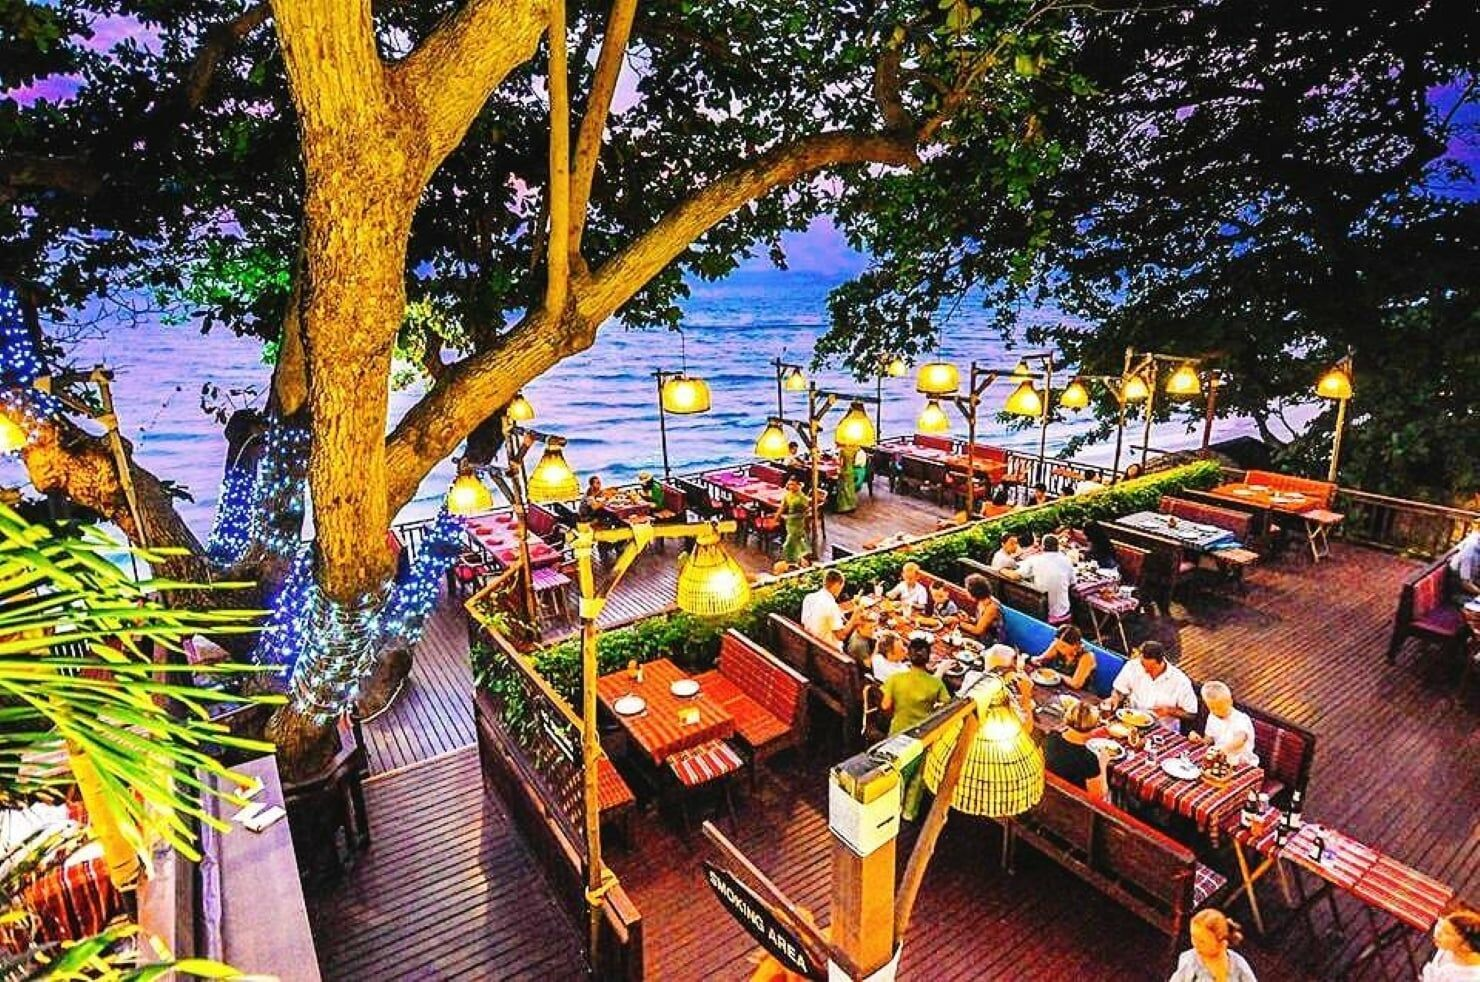 Cabbages & Condoms - best cafes in Pattaya